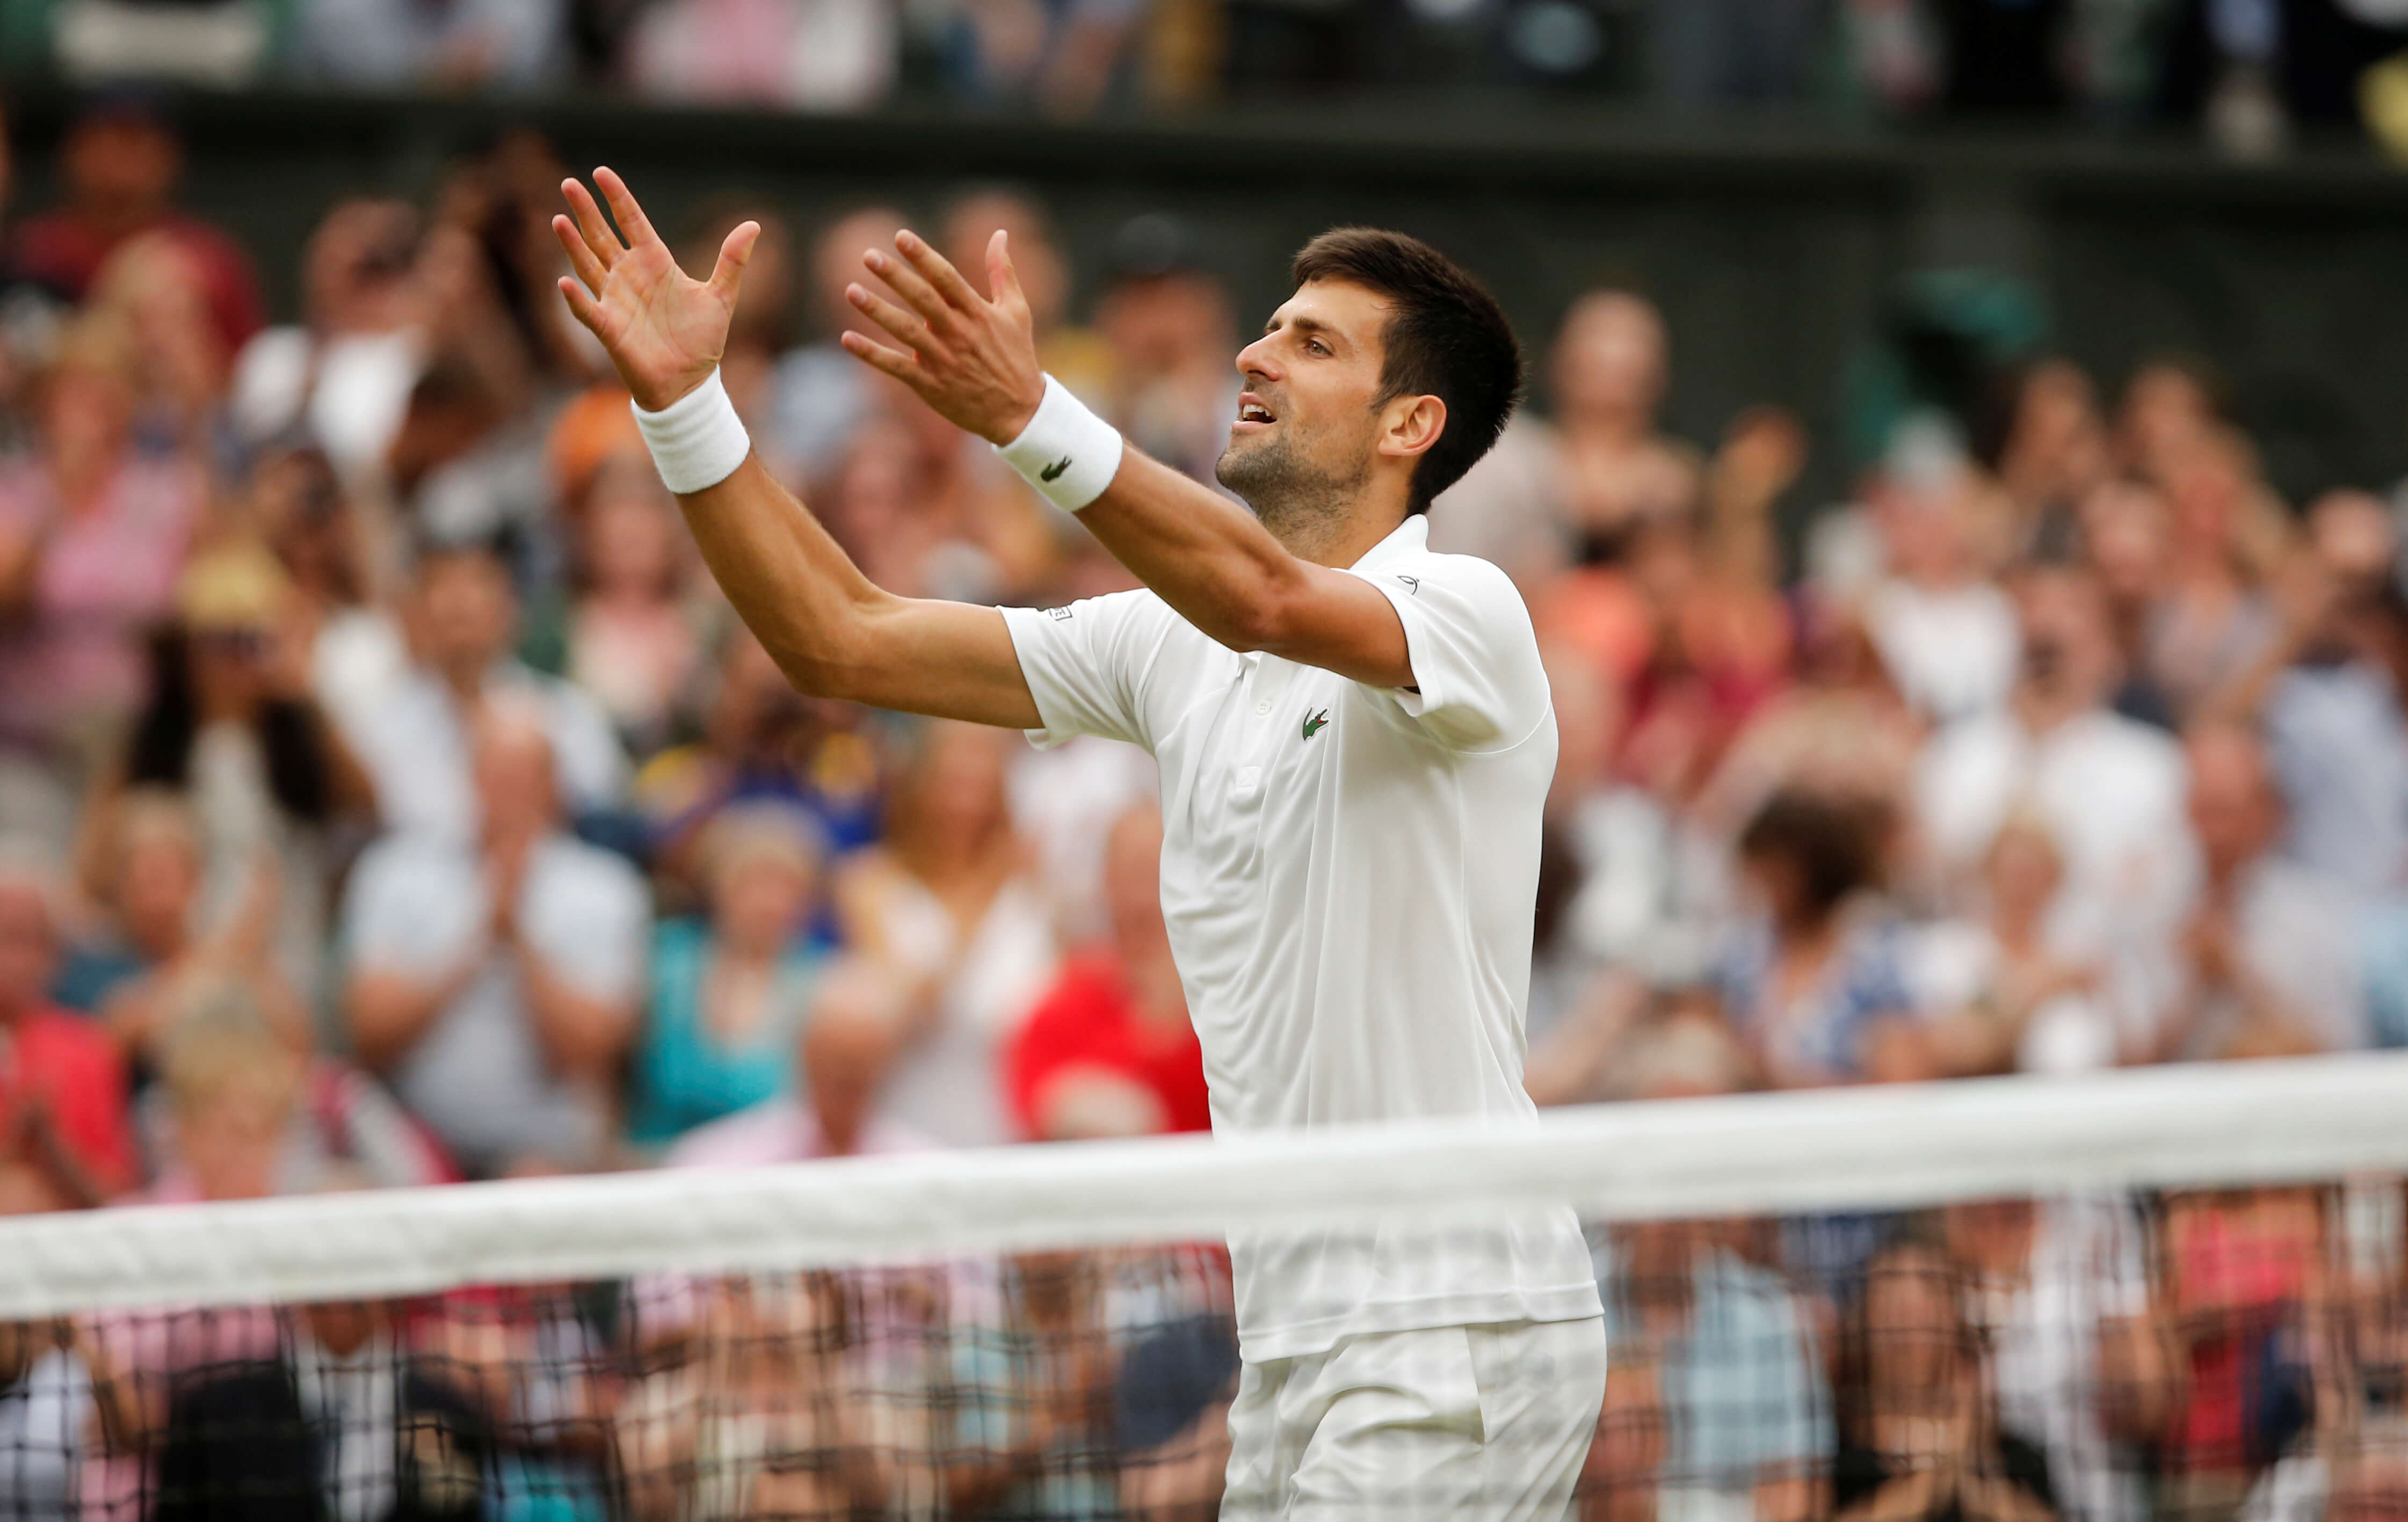 Novak Djokovic has won Wimbledon three times, the last time being in 2015 (Image: Reuters)